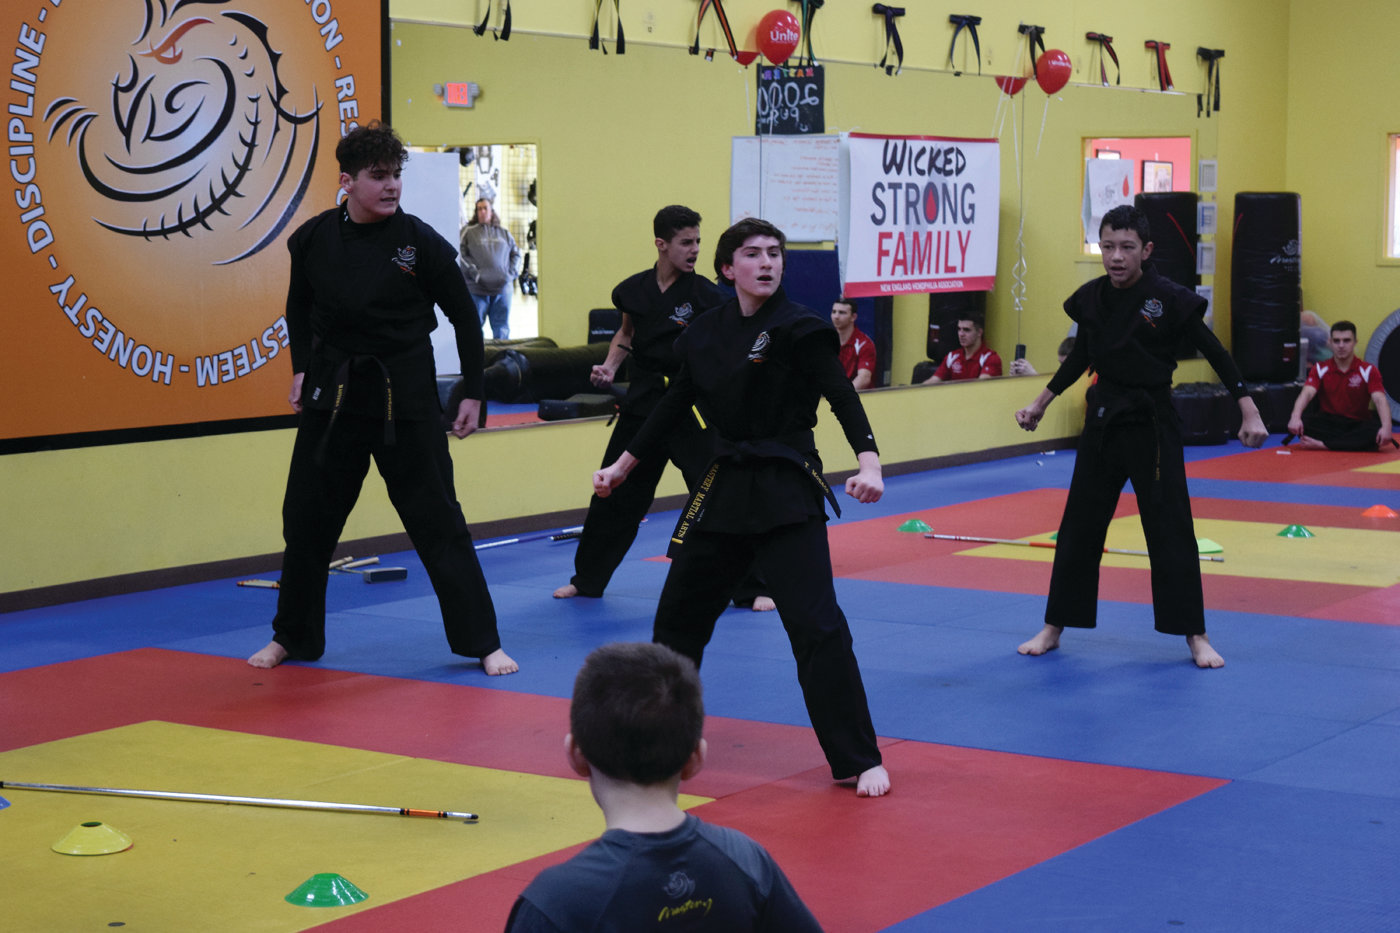 OPENING CEREMONY: Some of the older Mastery students opened Saturday's event in Johnston with a demonstration.